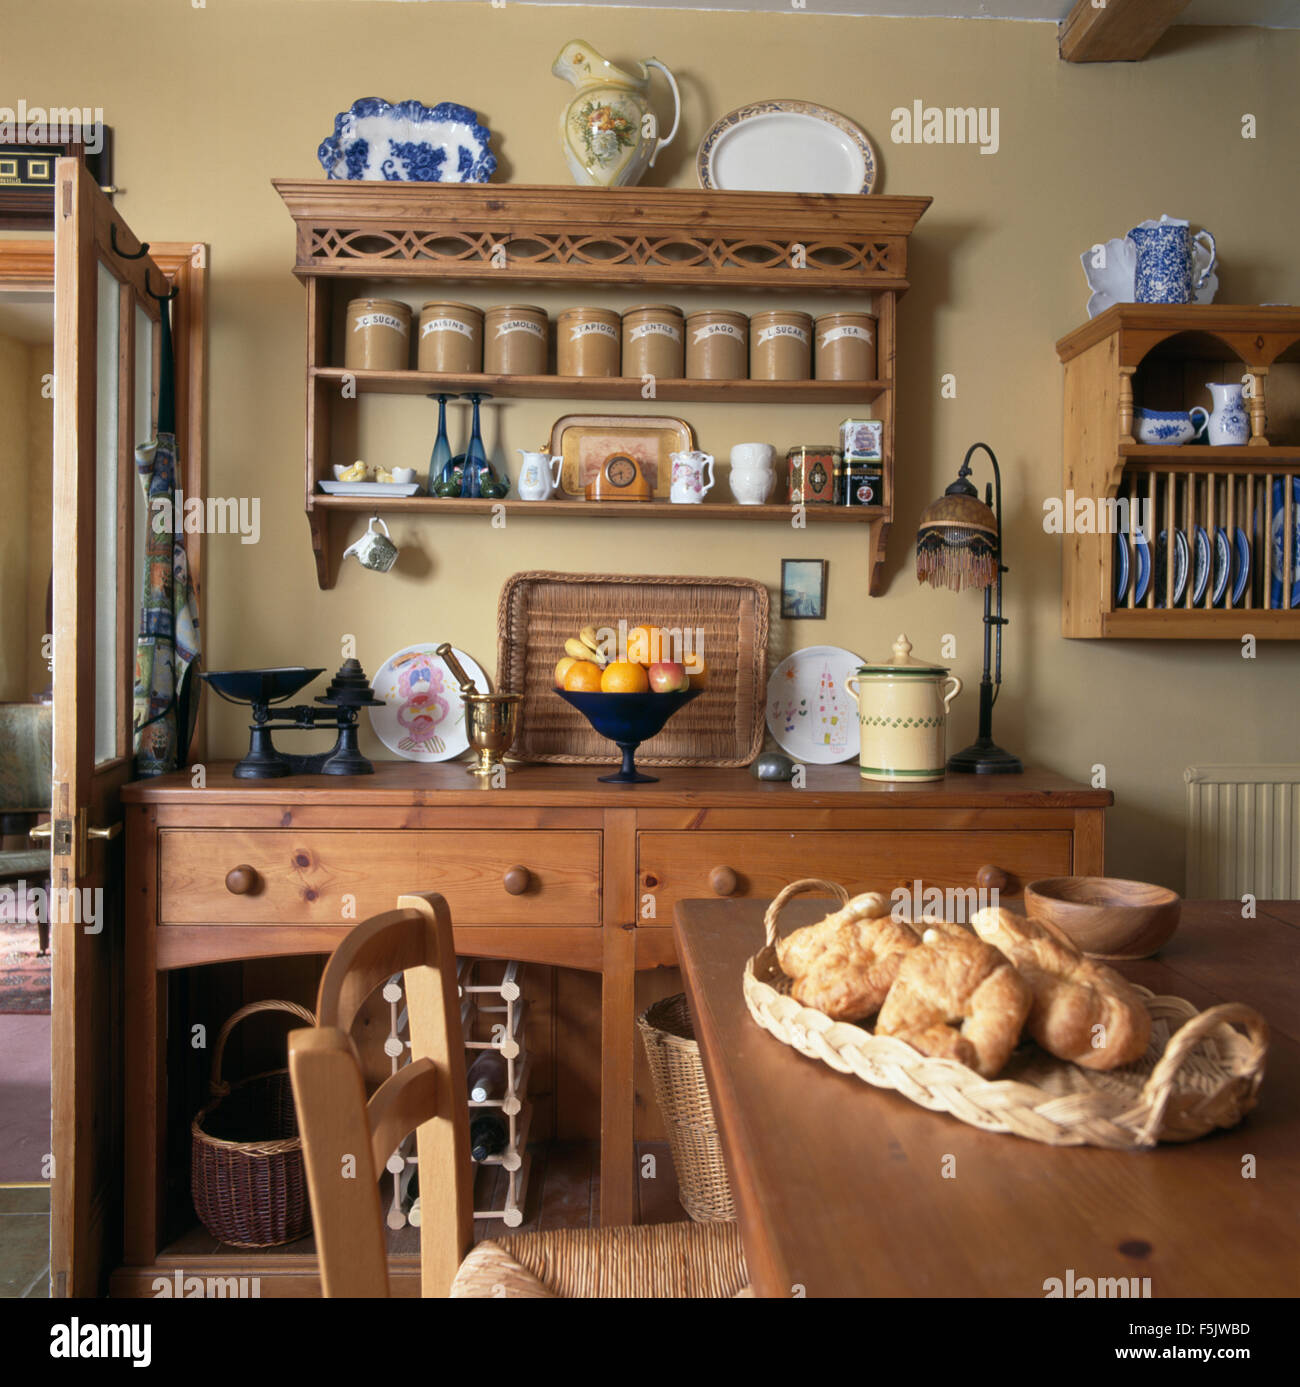 Basket Of Croissants On Table In A Cottage Kitchen Dining Room With Pine Shelves Above Dresser